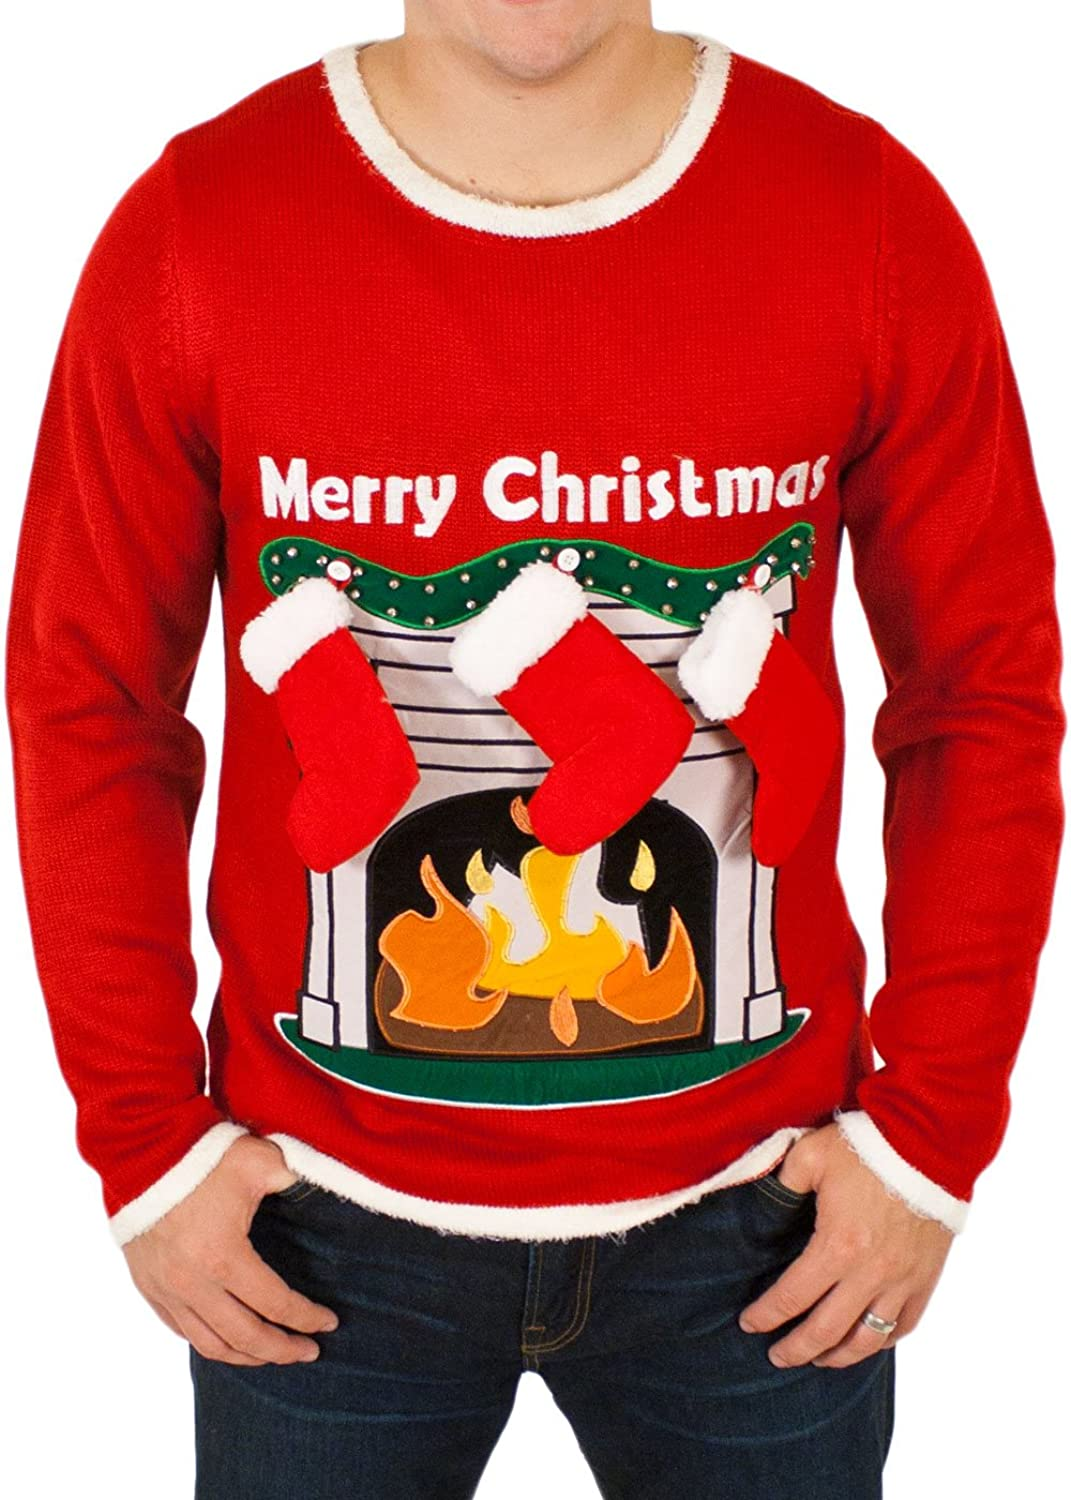 Amazon.com: Ugly Christmas Sweater   Lighted LED Fireplace Sweater With 3 D  Stockings In Red Medium By Festified: Clothing